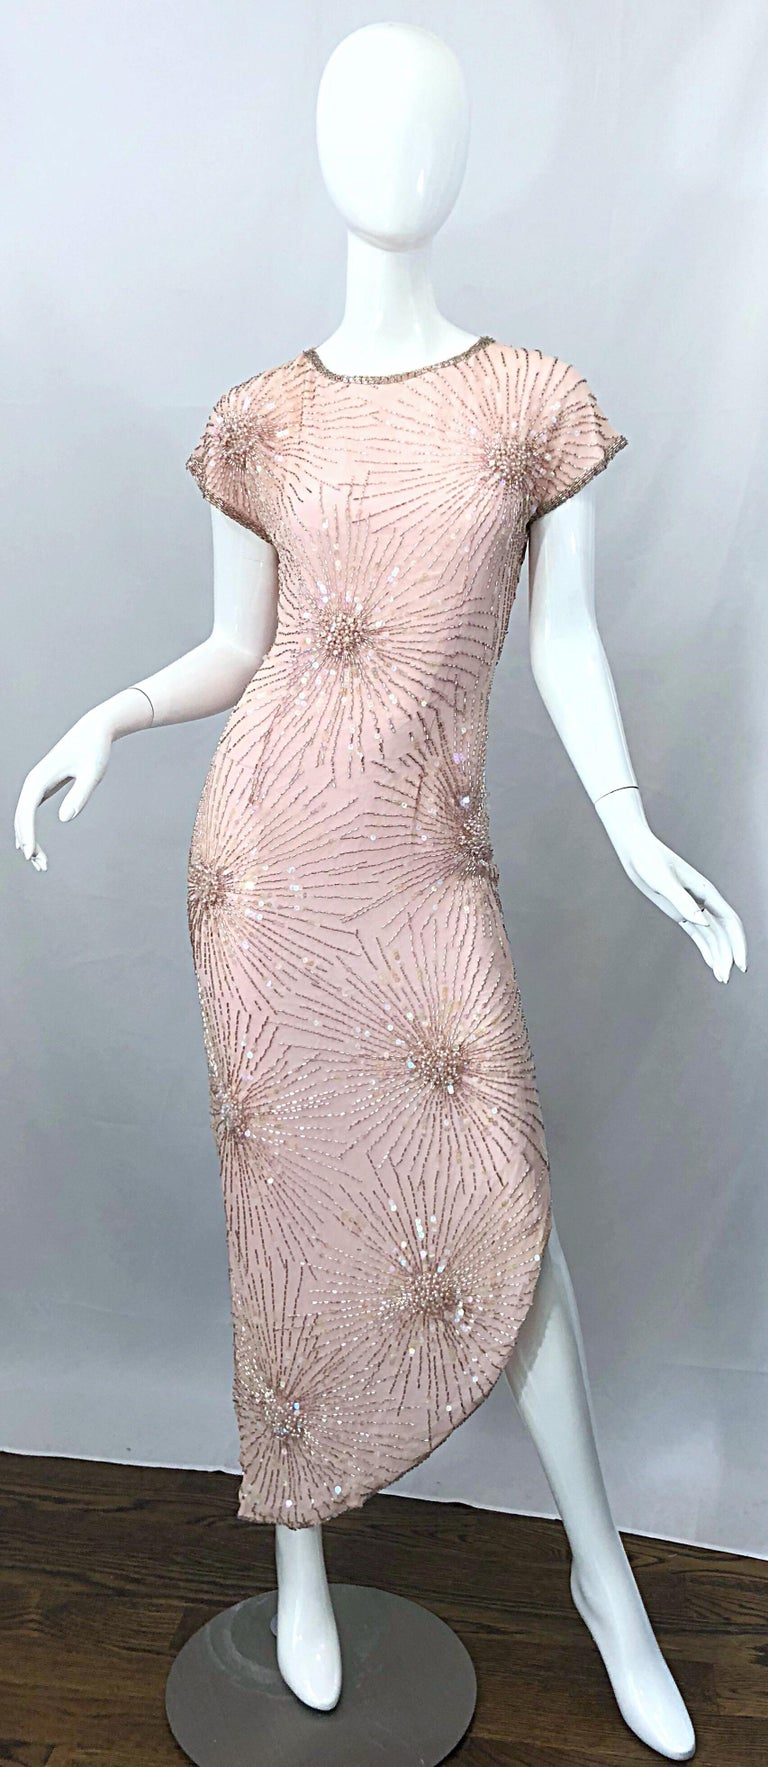 Gorgeous LILLIE RUBIN light pale pink silk chiffon beaded, sequined and pearl encrusted asymmetrical gown! Though no Halston, the Lillie Rubin boutique in Beverly Hills carried his pieces, and this is a dead ringer for his infamous 'fireworks'